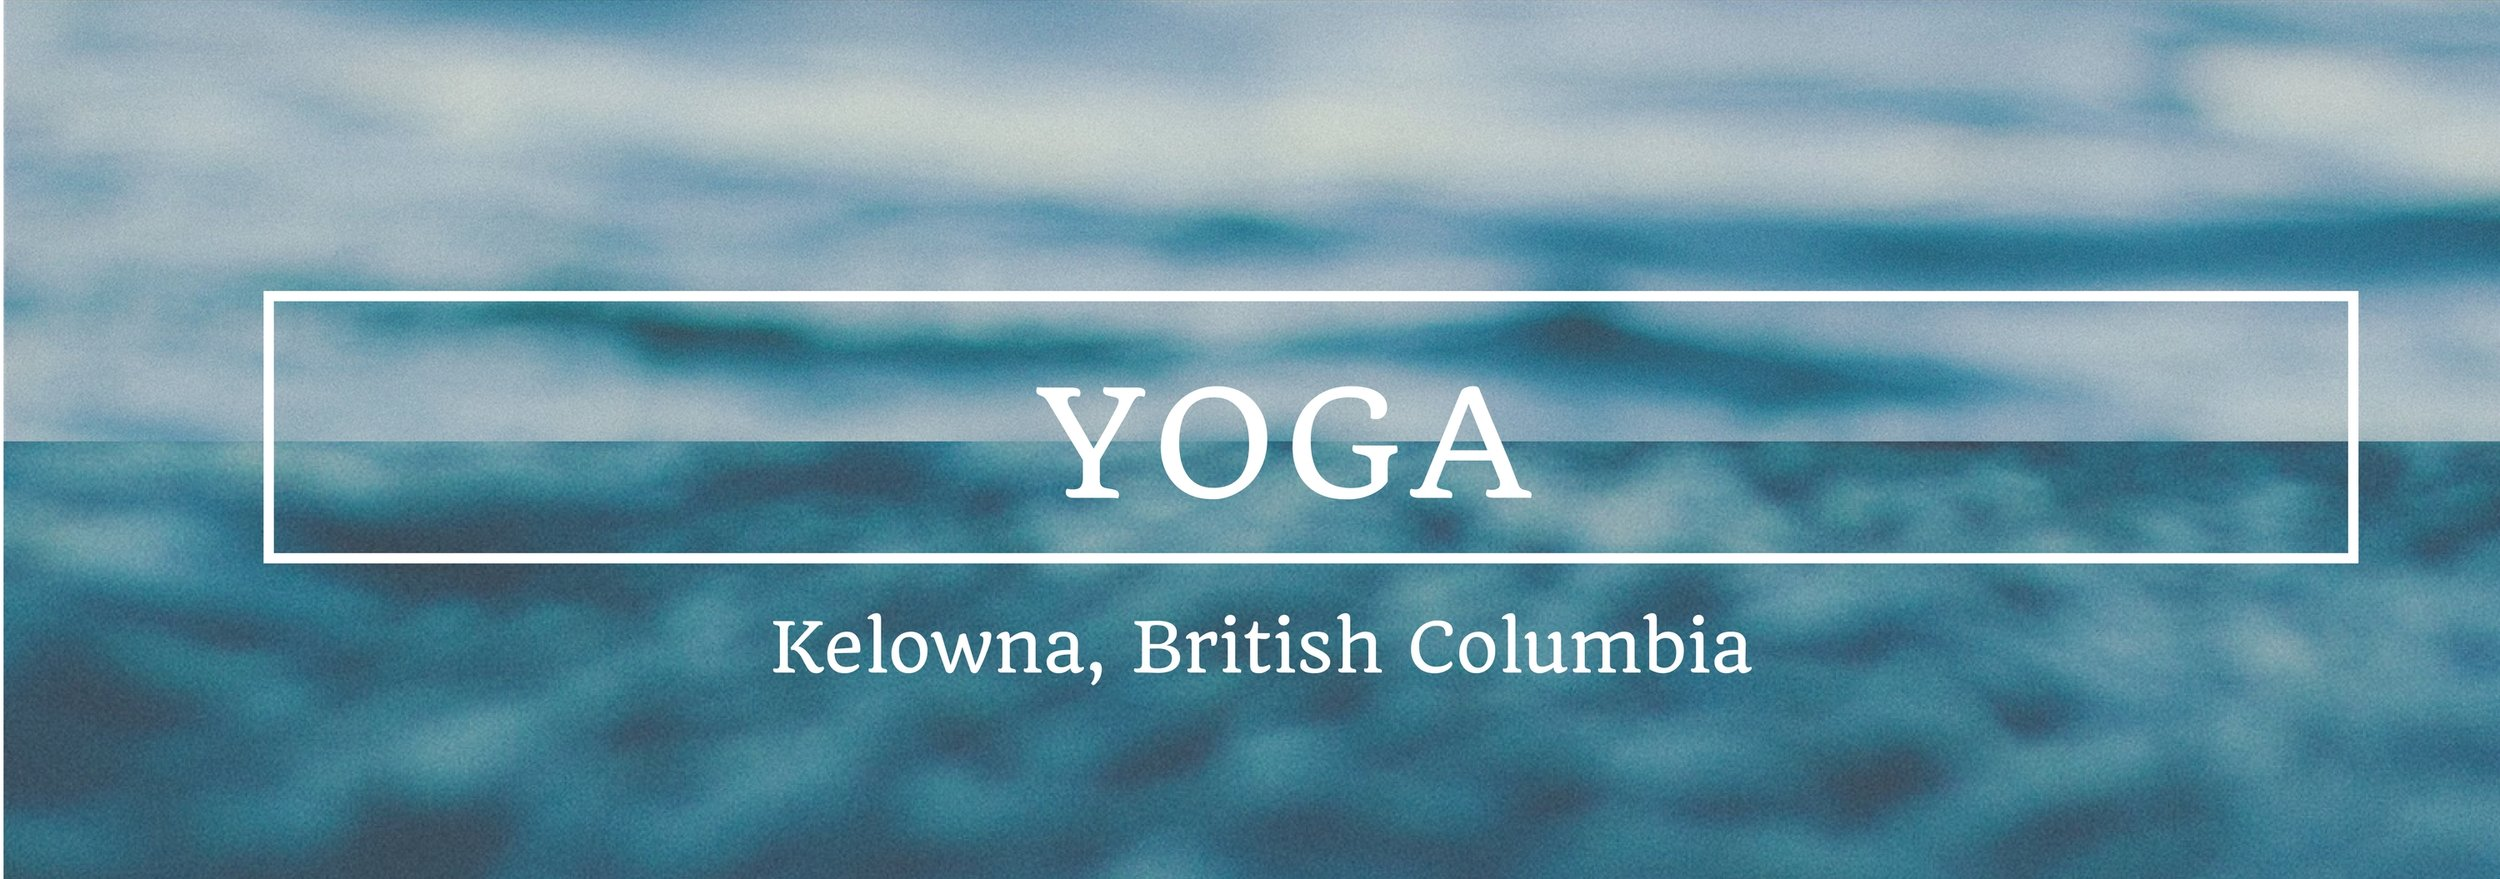 Yoga classes in Kelowna